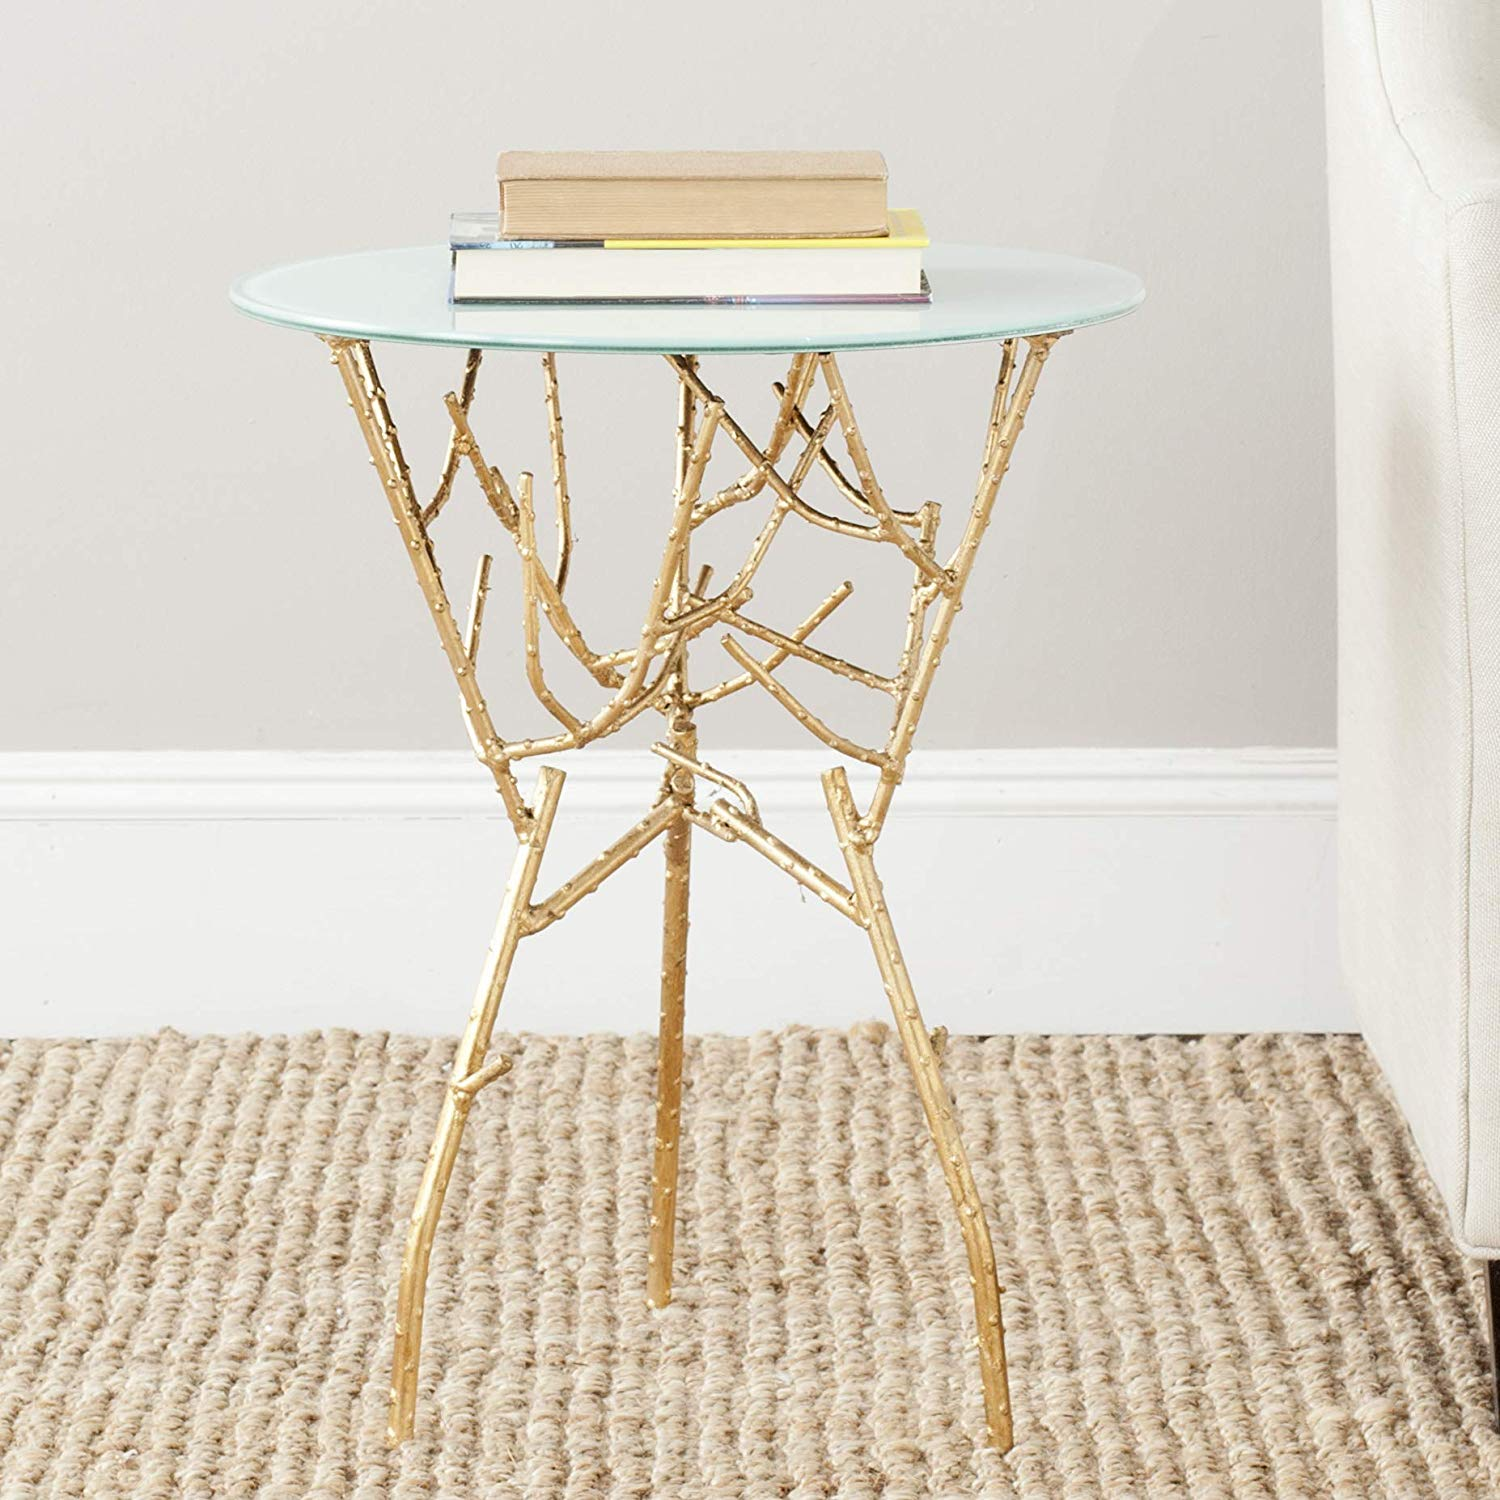 safavieh parent home collection tara branched qtnvptl gold accent table with glass top round white kitchen dining bedside cabinets jcpenney bar stools trestle canvas umbrella